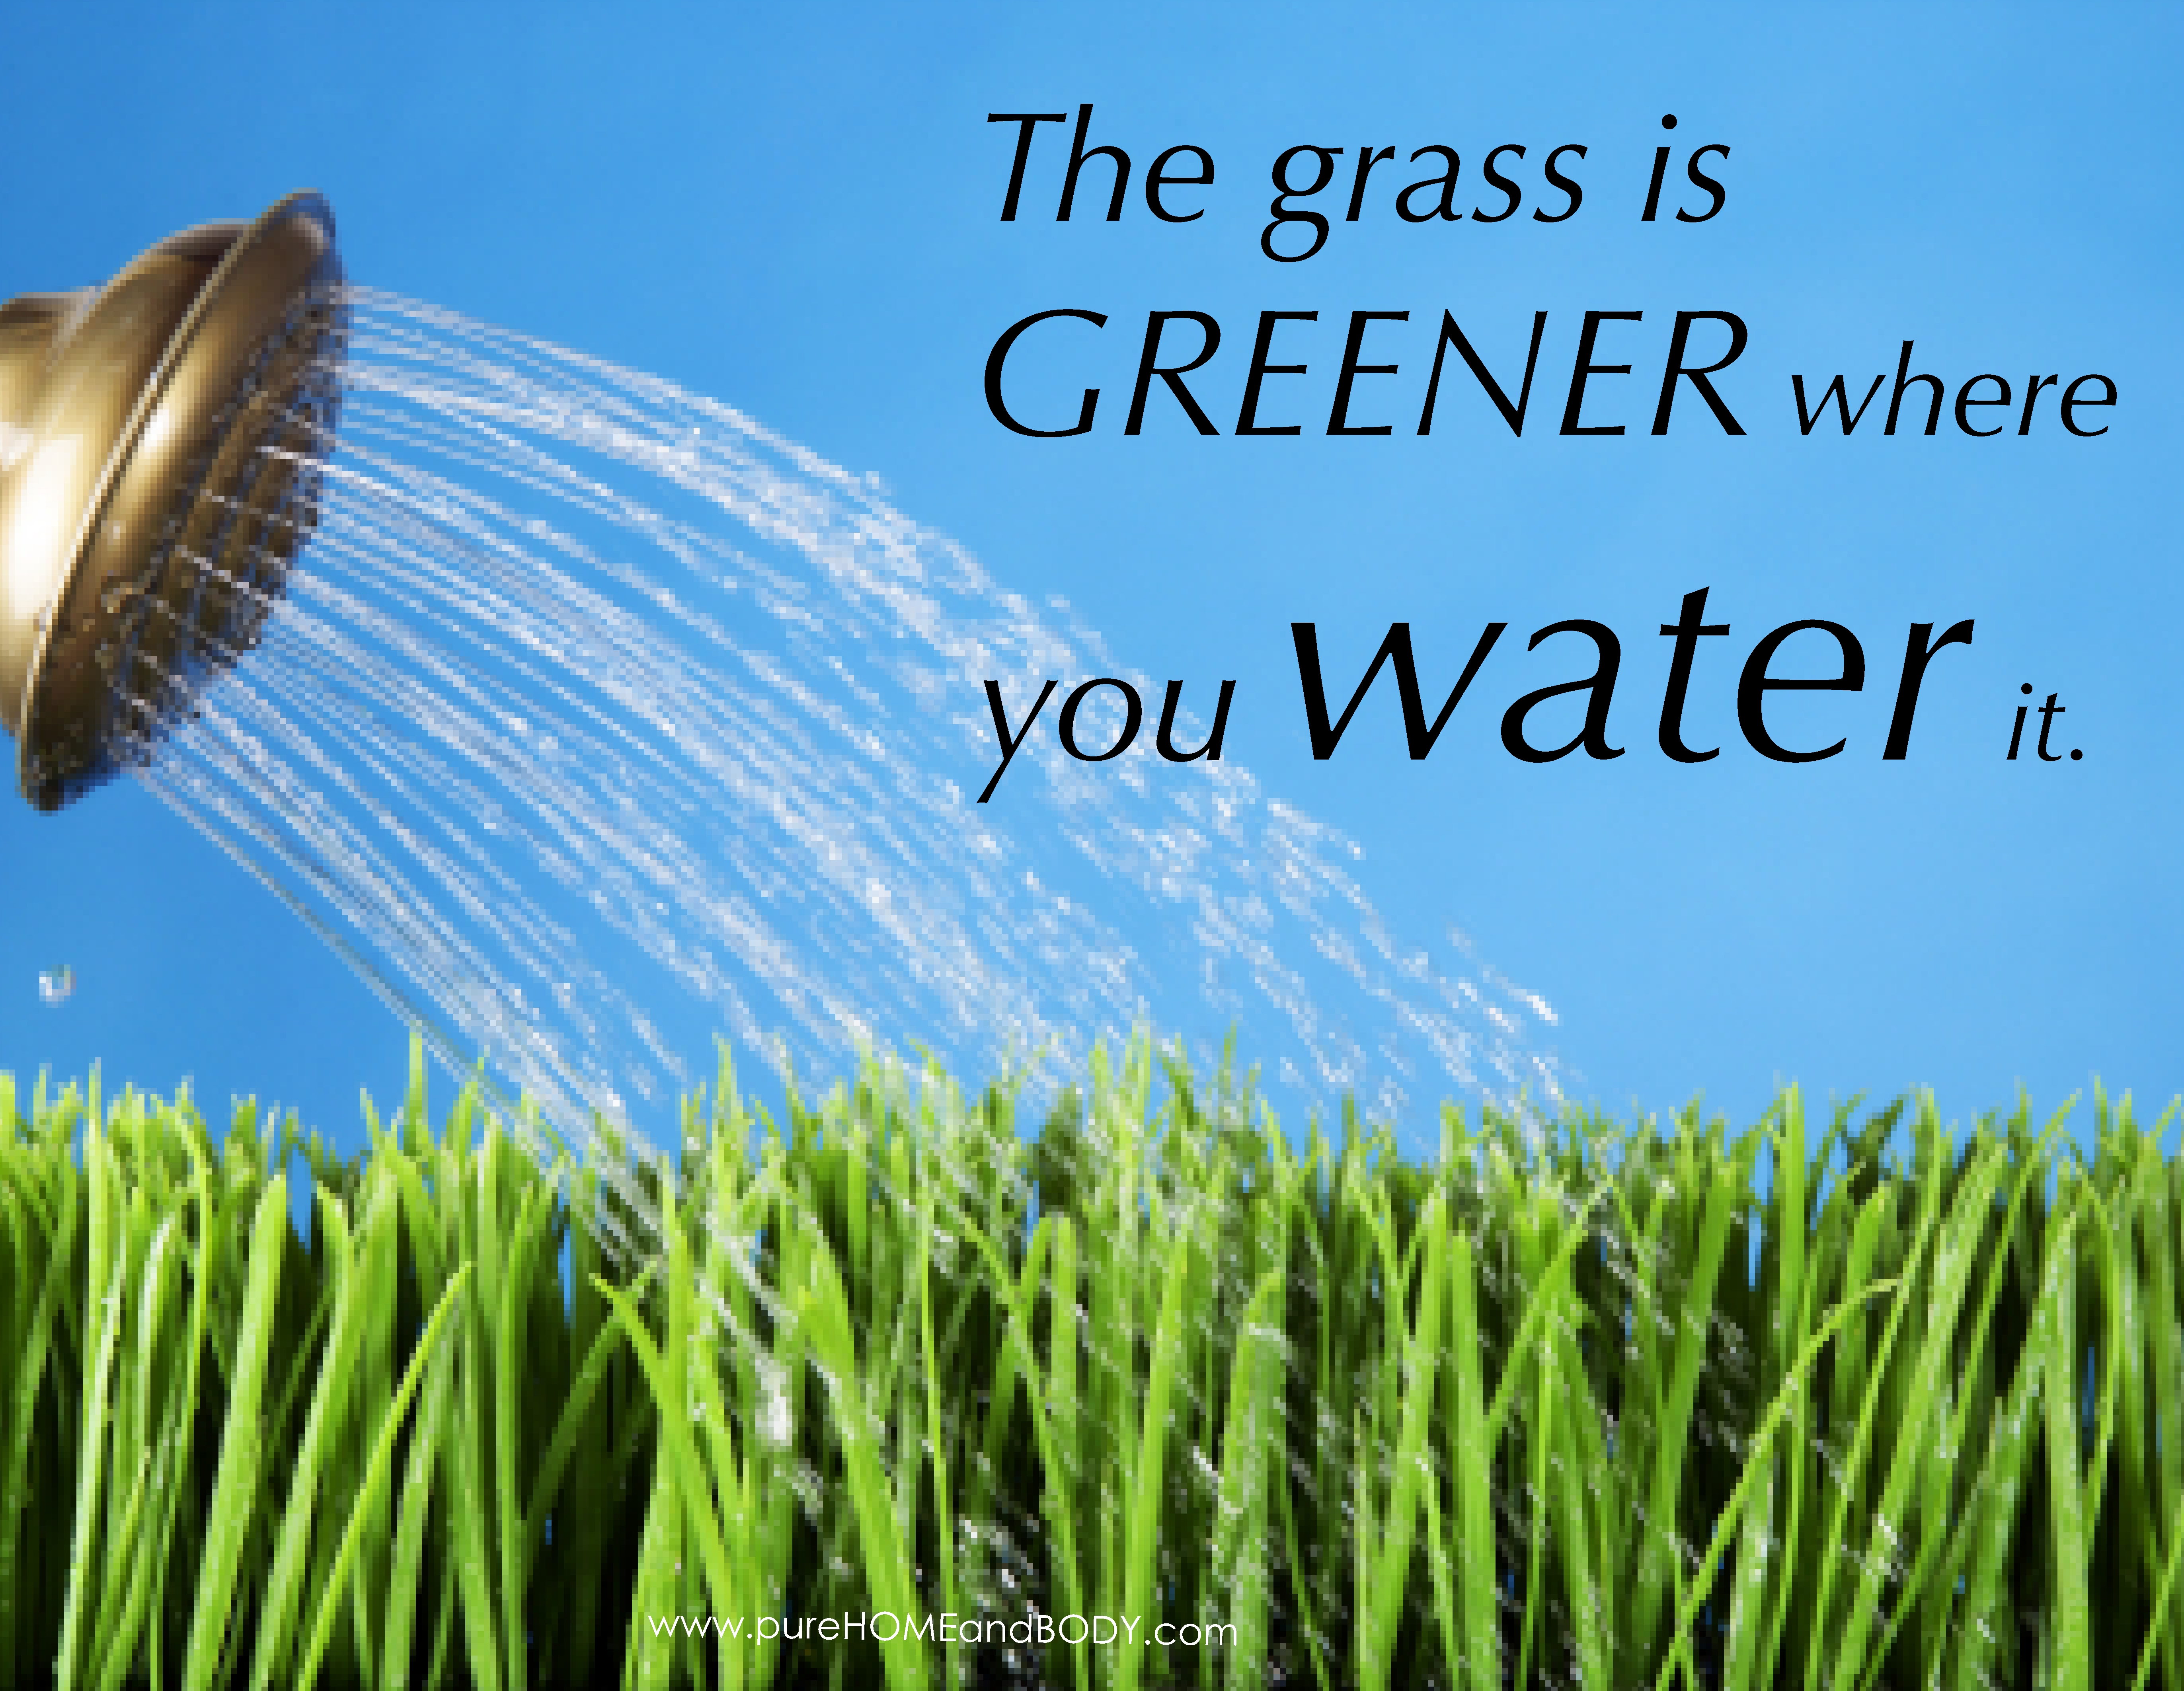 Grass Is Always Greener Quotes: A The Grass Is Greener Quote1